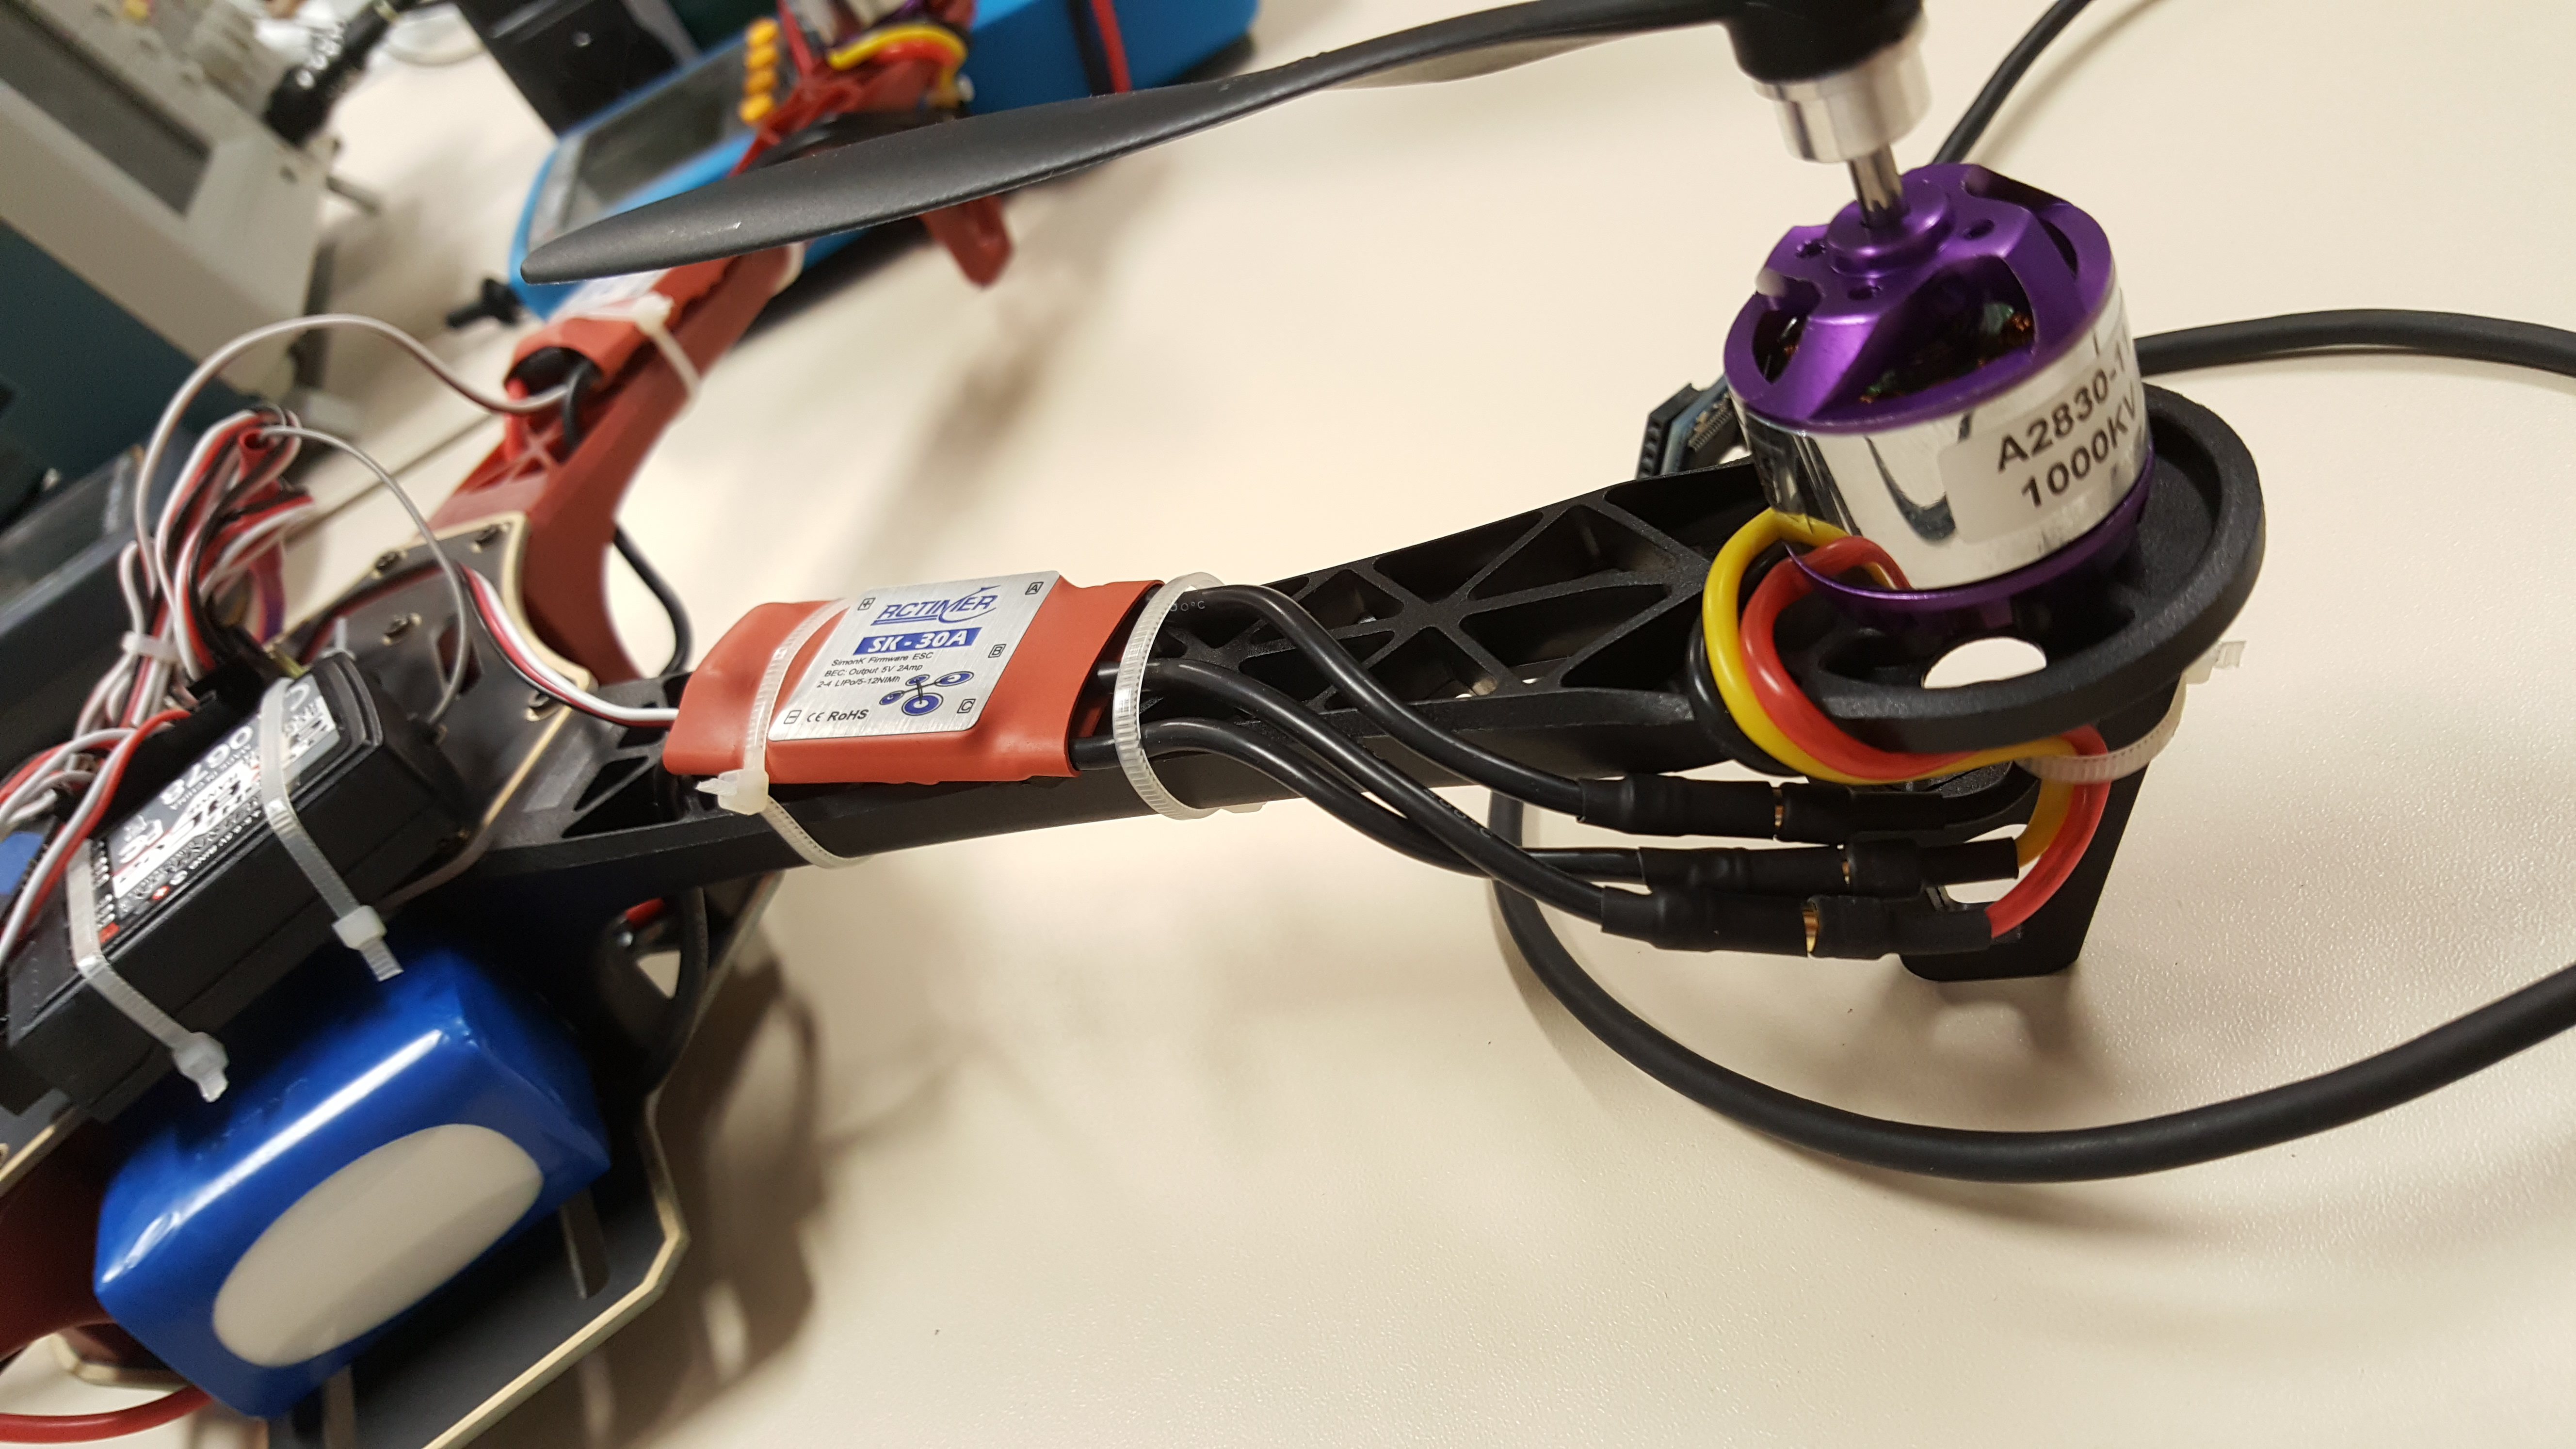 Lisha Software Hardware Integration Lab Multiwii Quadcopters Guide Of Beginners To Connecting Your Rc Plane Electronic Parts There We See The Motors 11 And 3 Respectively Note That Black Yellow Connections Are Reversed From One Another Connection Motor 10